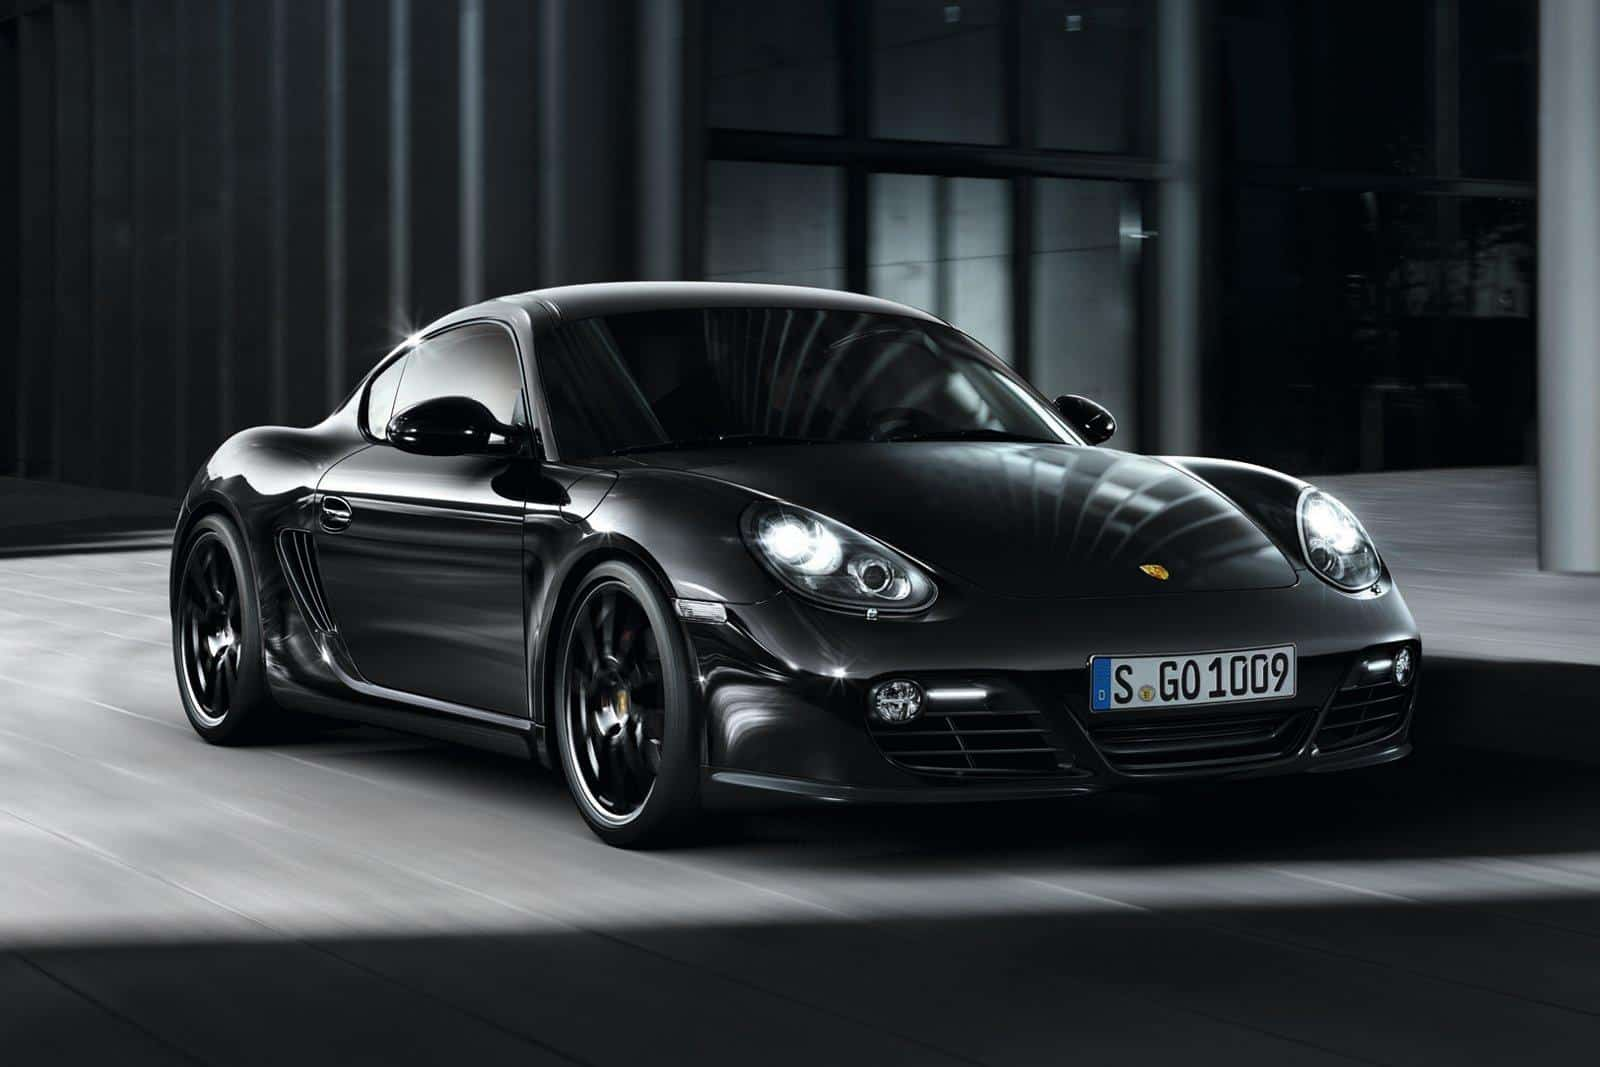 cool cars porsche cayman s beverly hills magazine. Black Bedroom Furniture Sets. Home Design Ideas